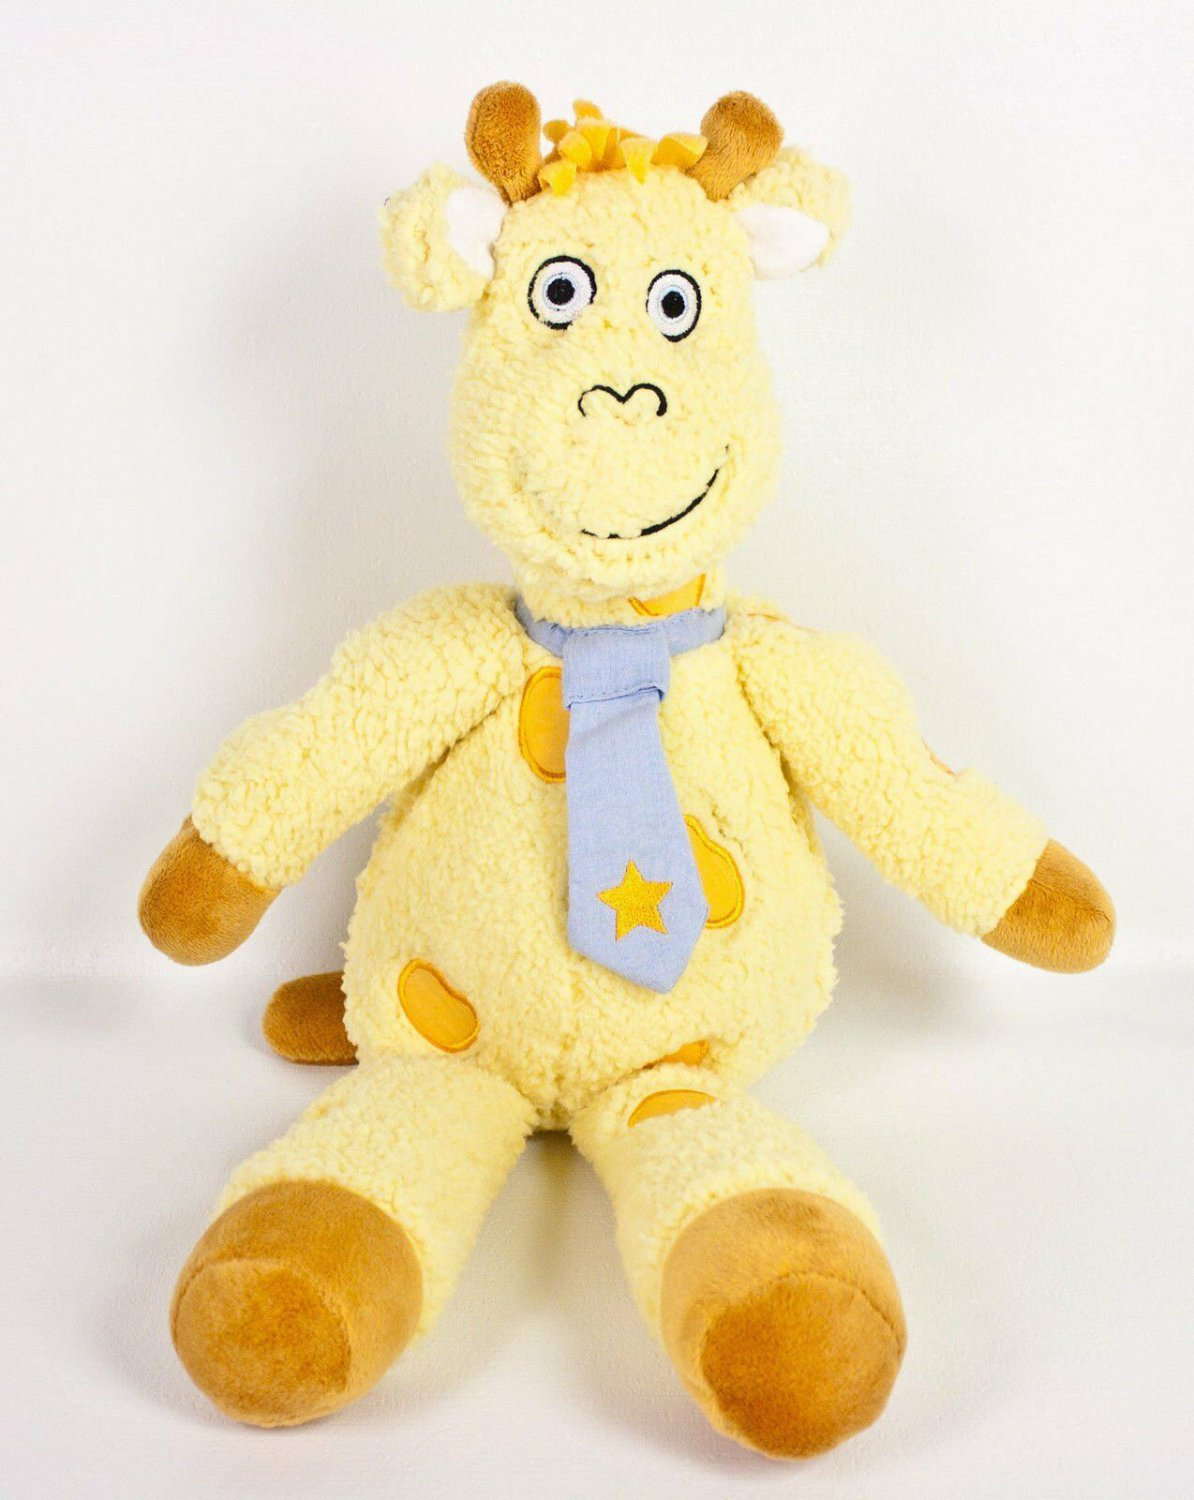 Avon Tiny Tillia Ben Giraffe Plush Cuddle Buddy Sherpa Stuffed Lovey Retired 16""